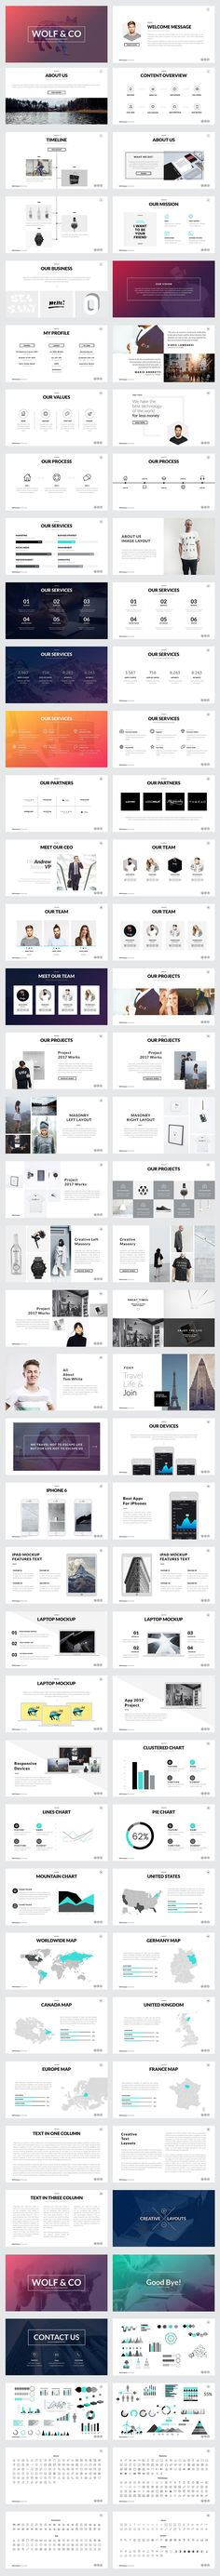 Minimalistic presentation template perfect for course-selling bloggers and entrepreneurs | Wolf Minimal Keynote Template by Slidedizer on @creativemarket #affiliate